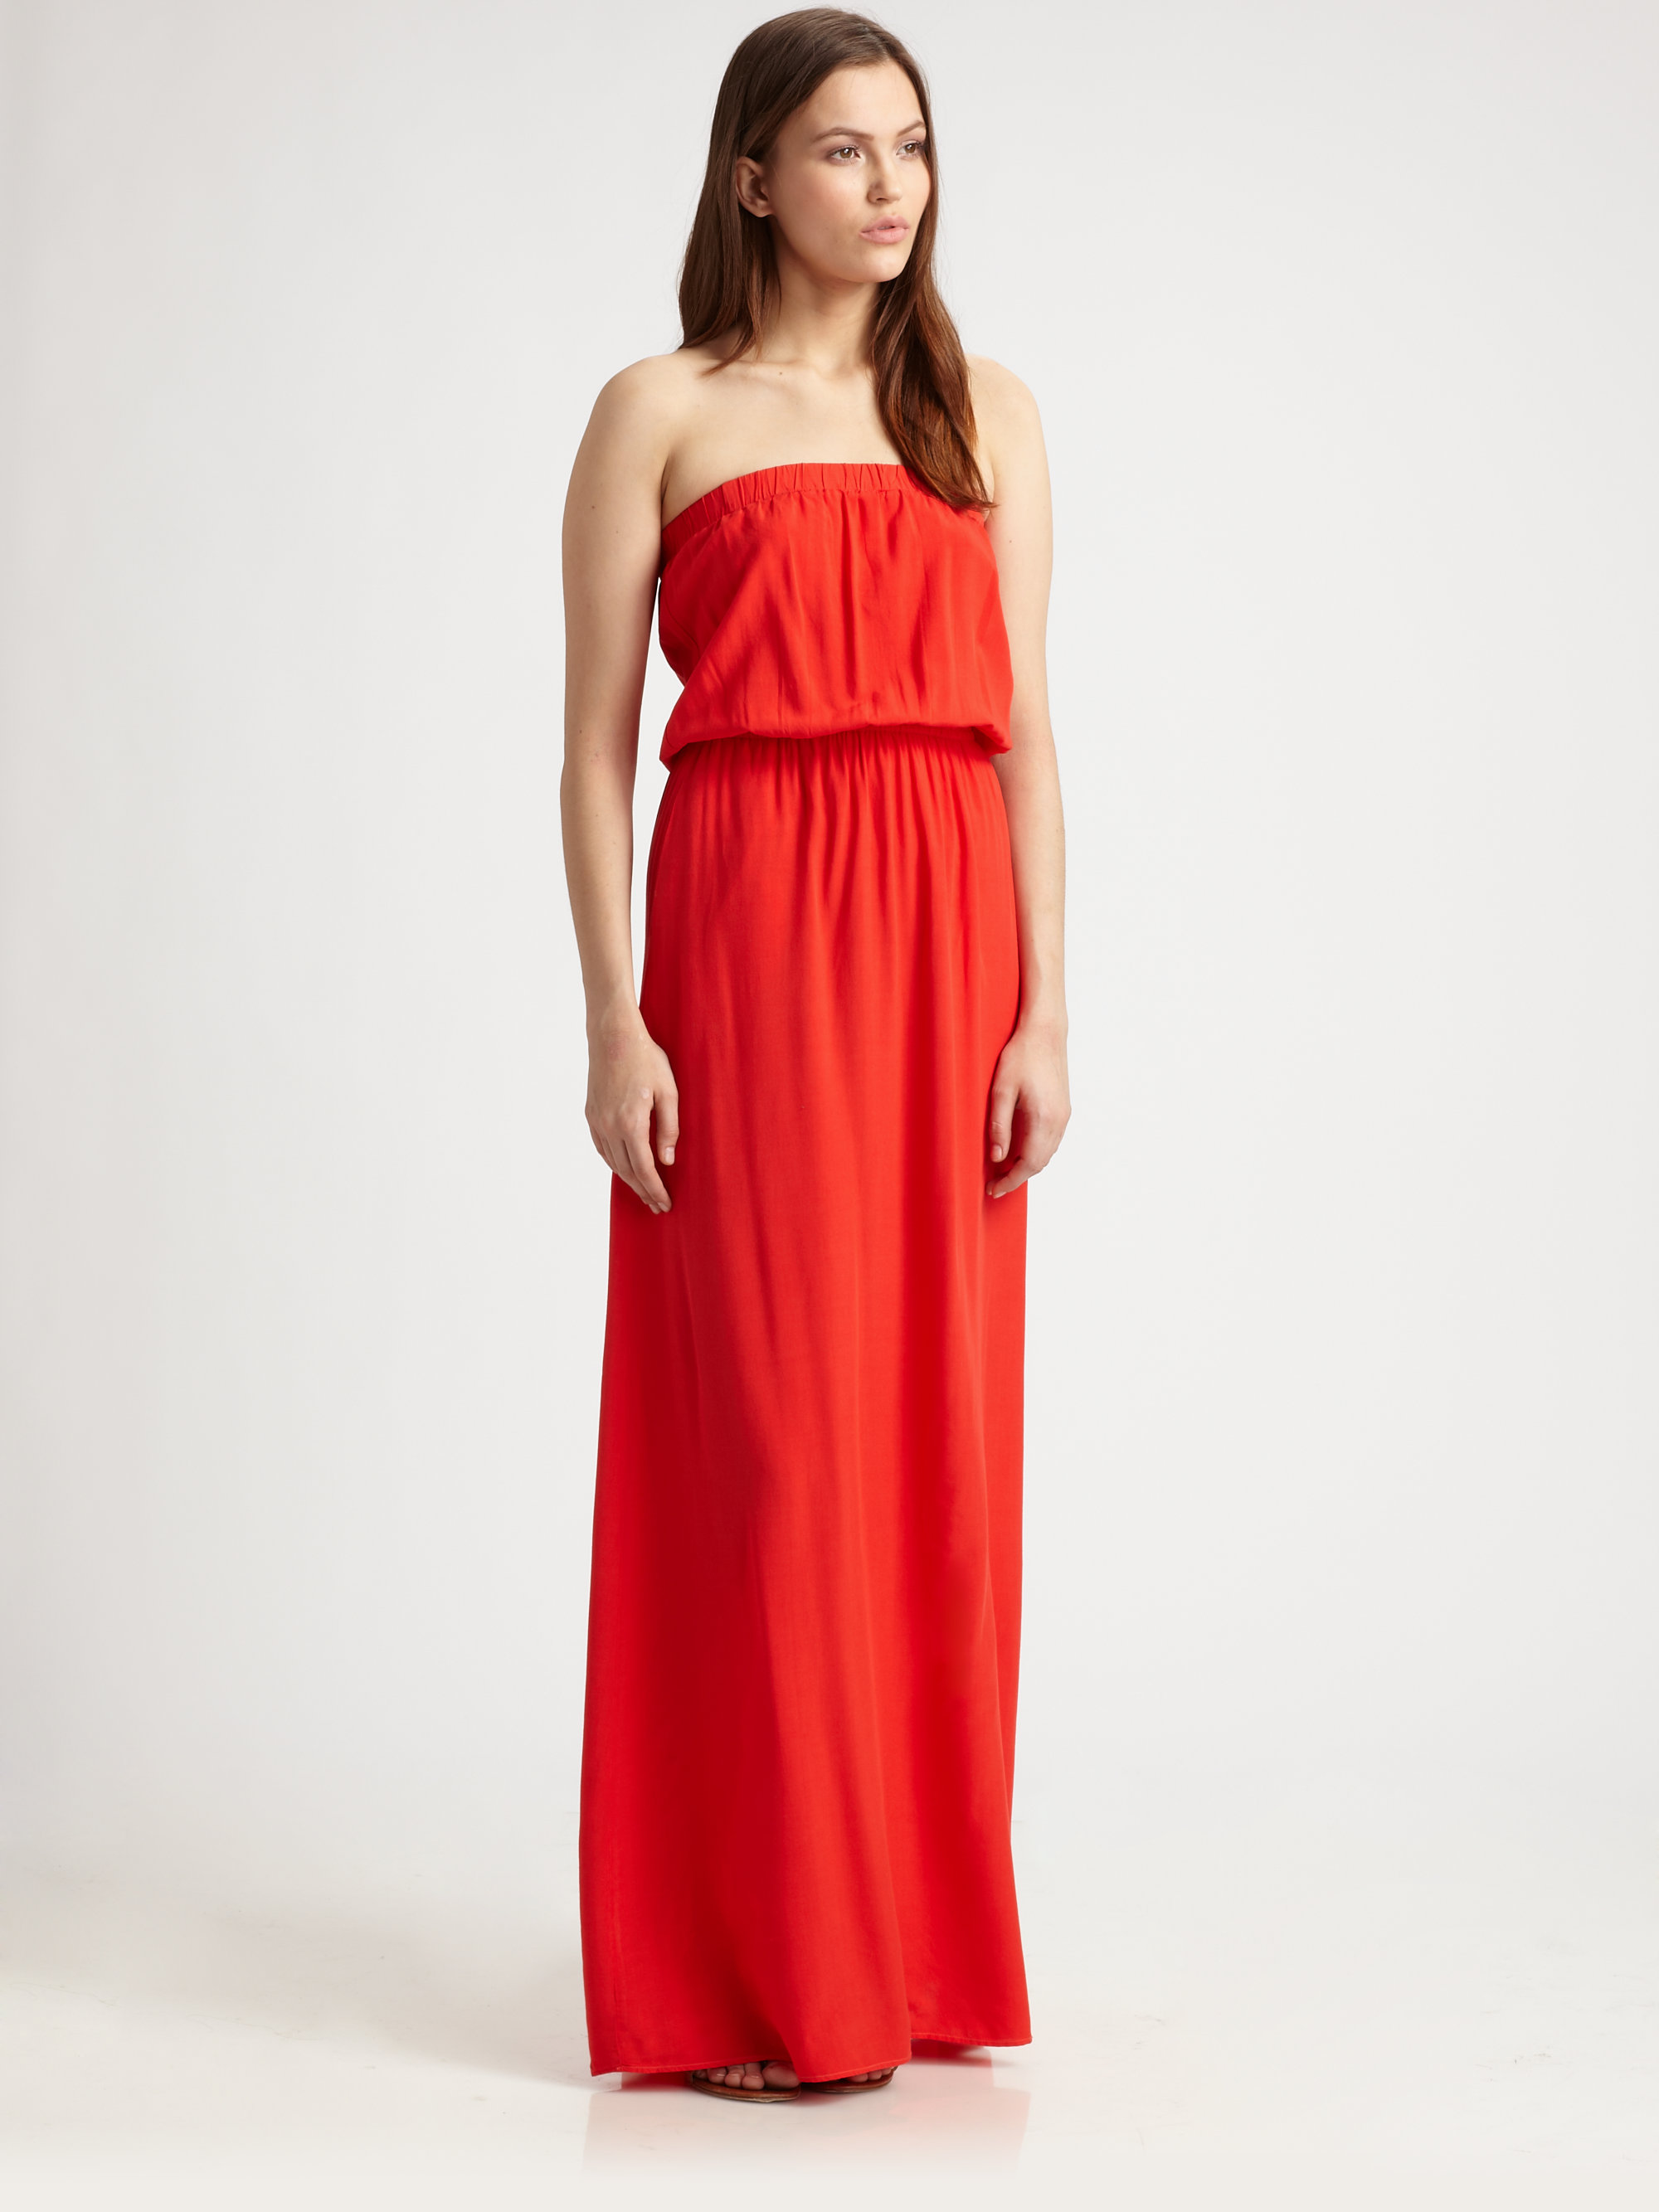 Splendid Strapless Maxi Dress in Red (paprika) | Lyst